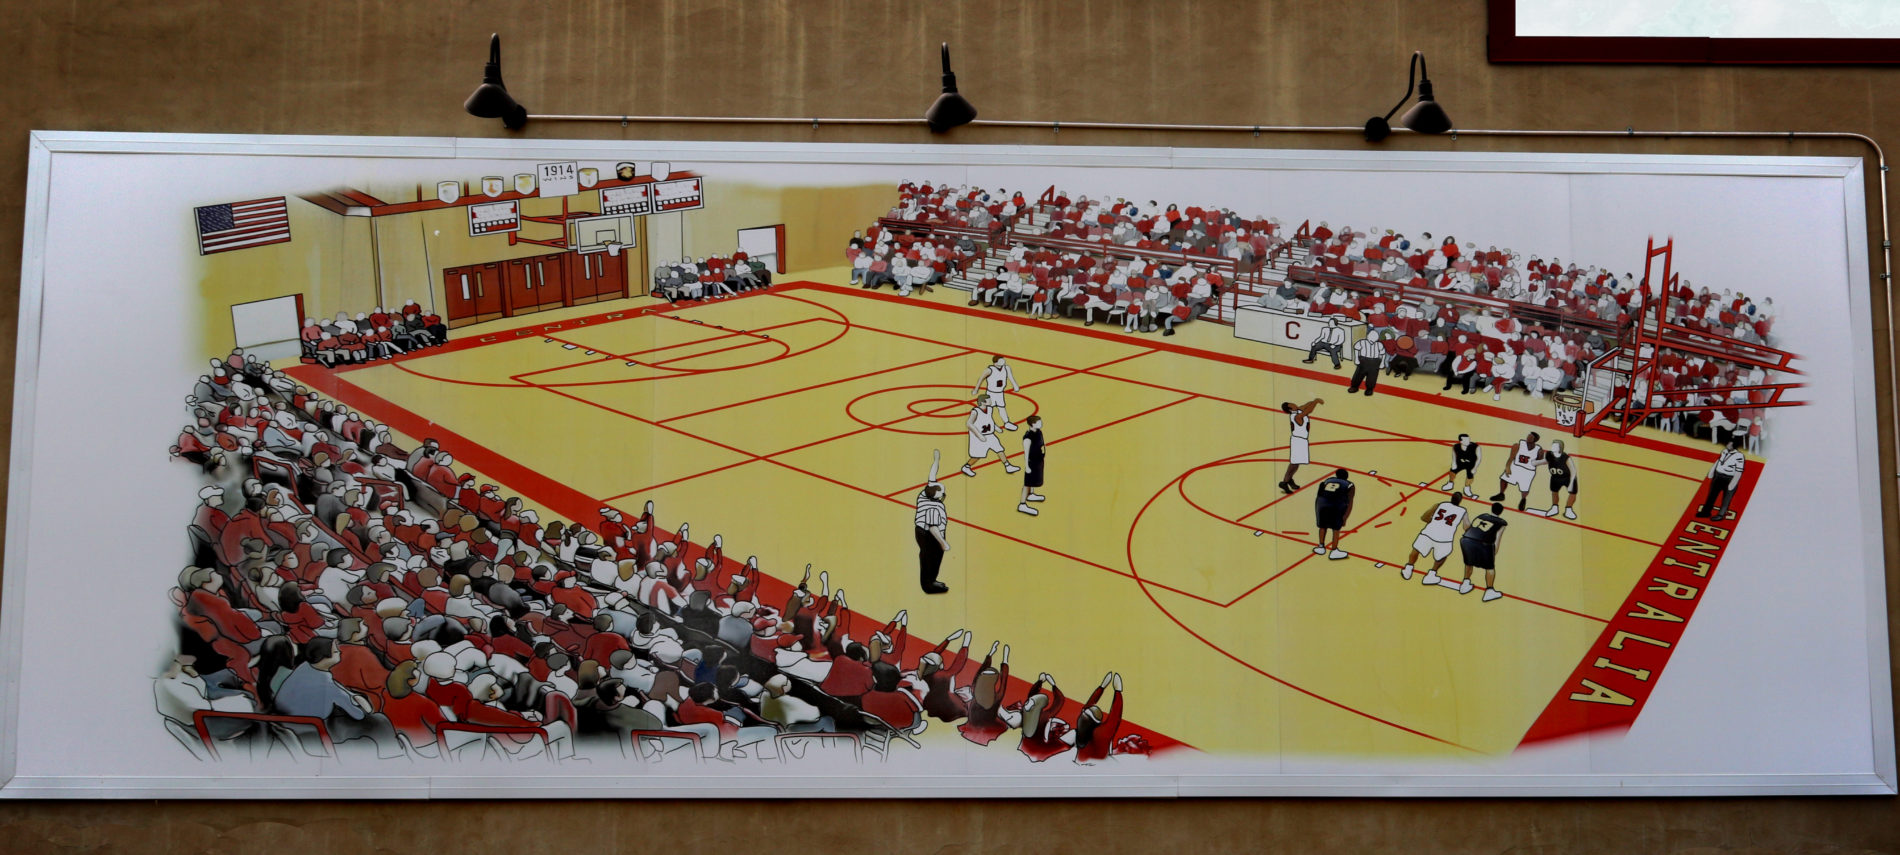 Mural of a basketball court with team playing, signifying the last game of the winning team.